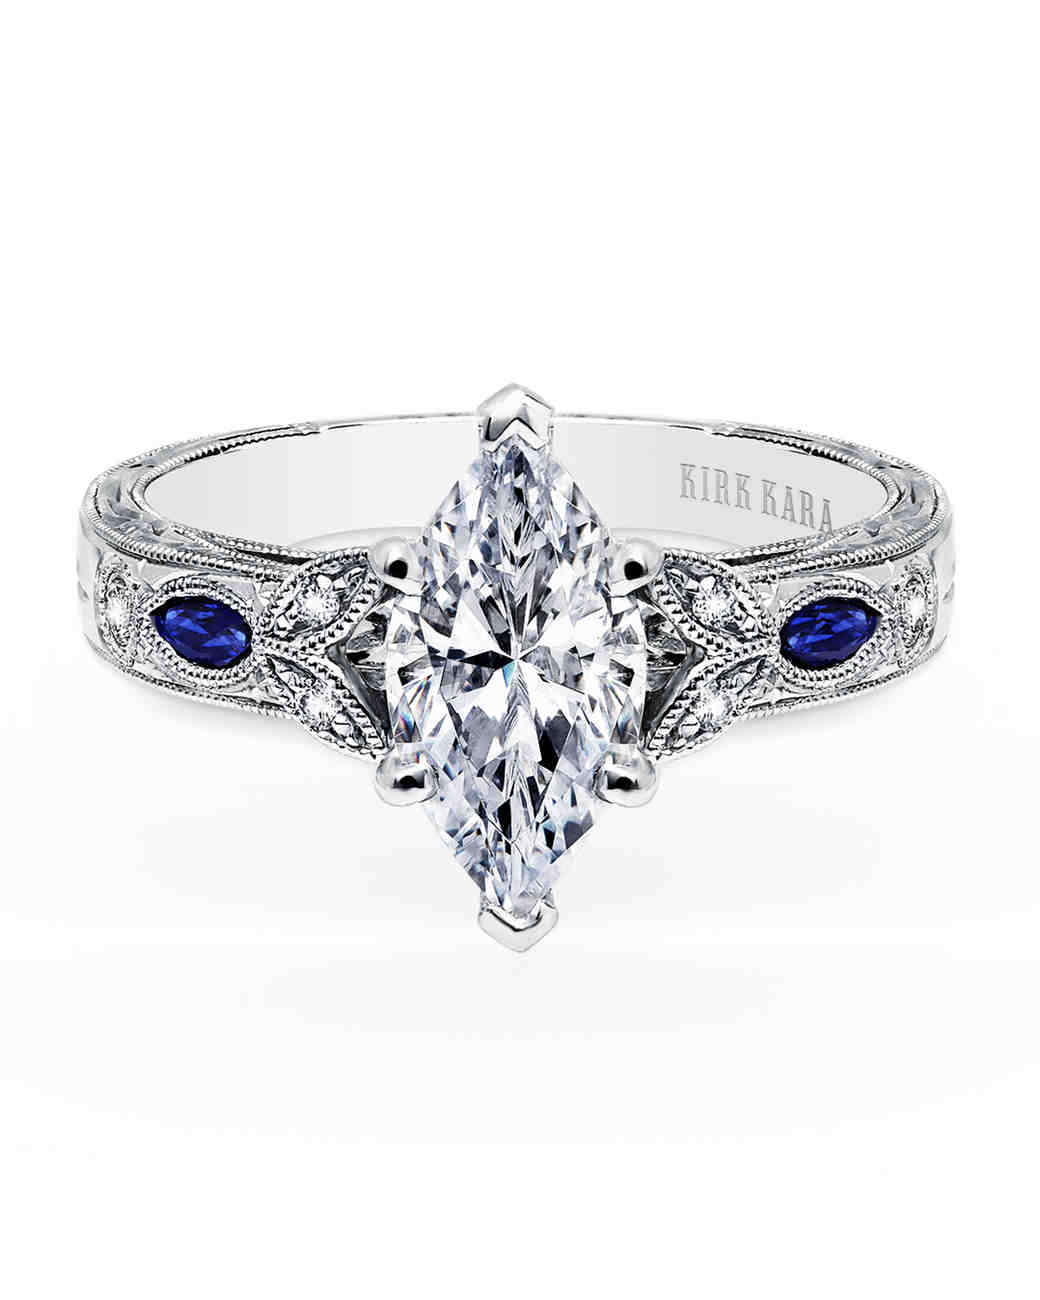 prod rings engagement sears hei fashion diamond sharpen op wid jewelry b style twist